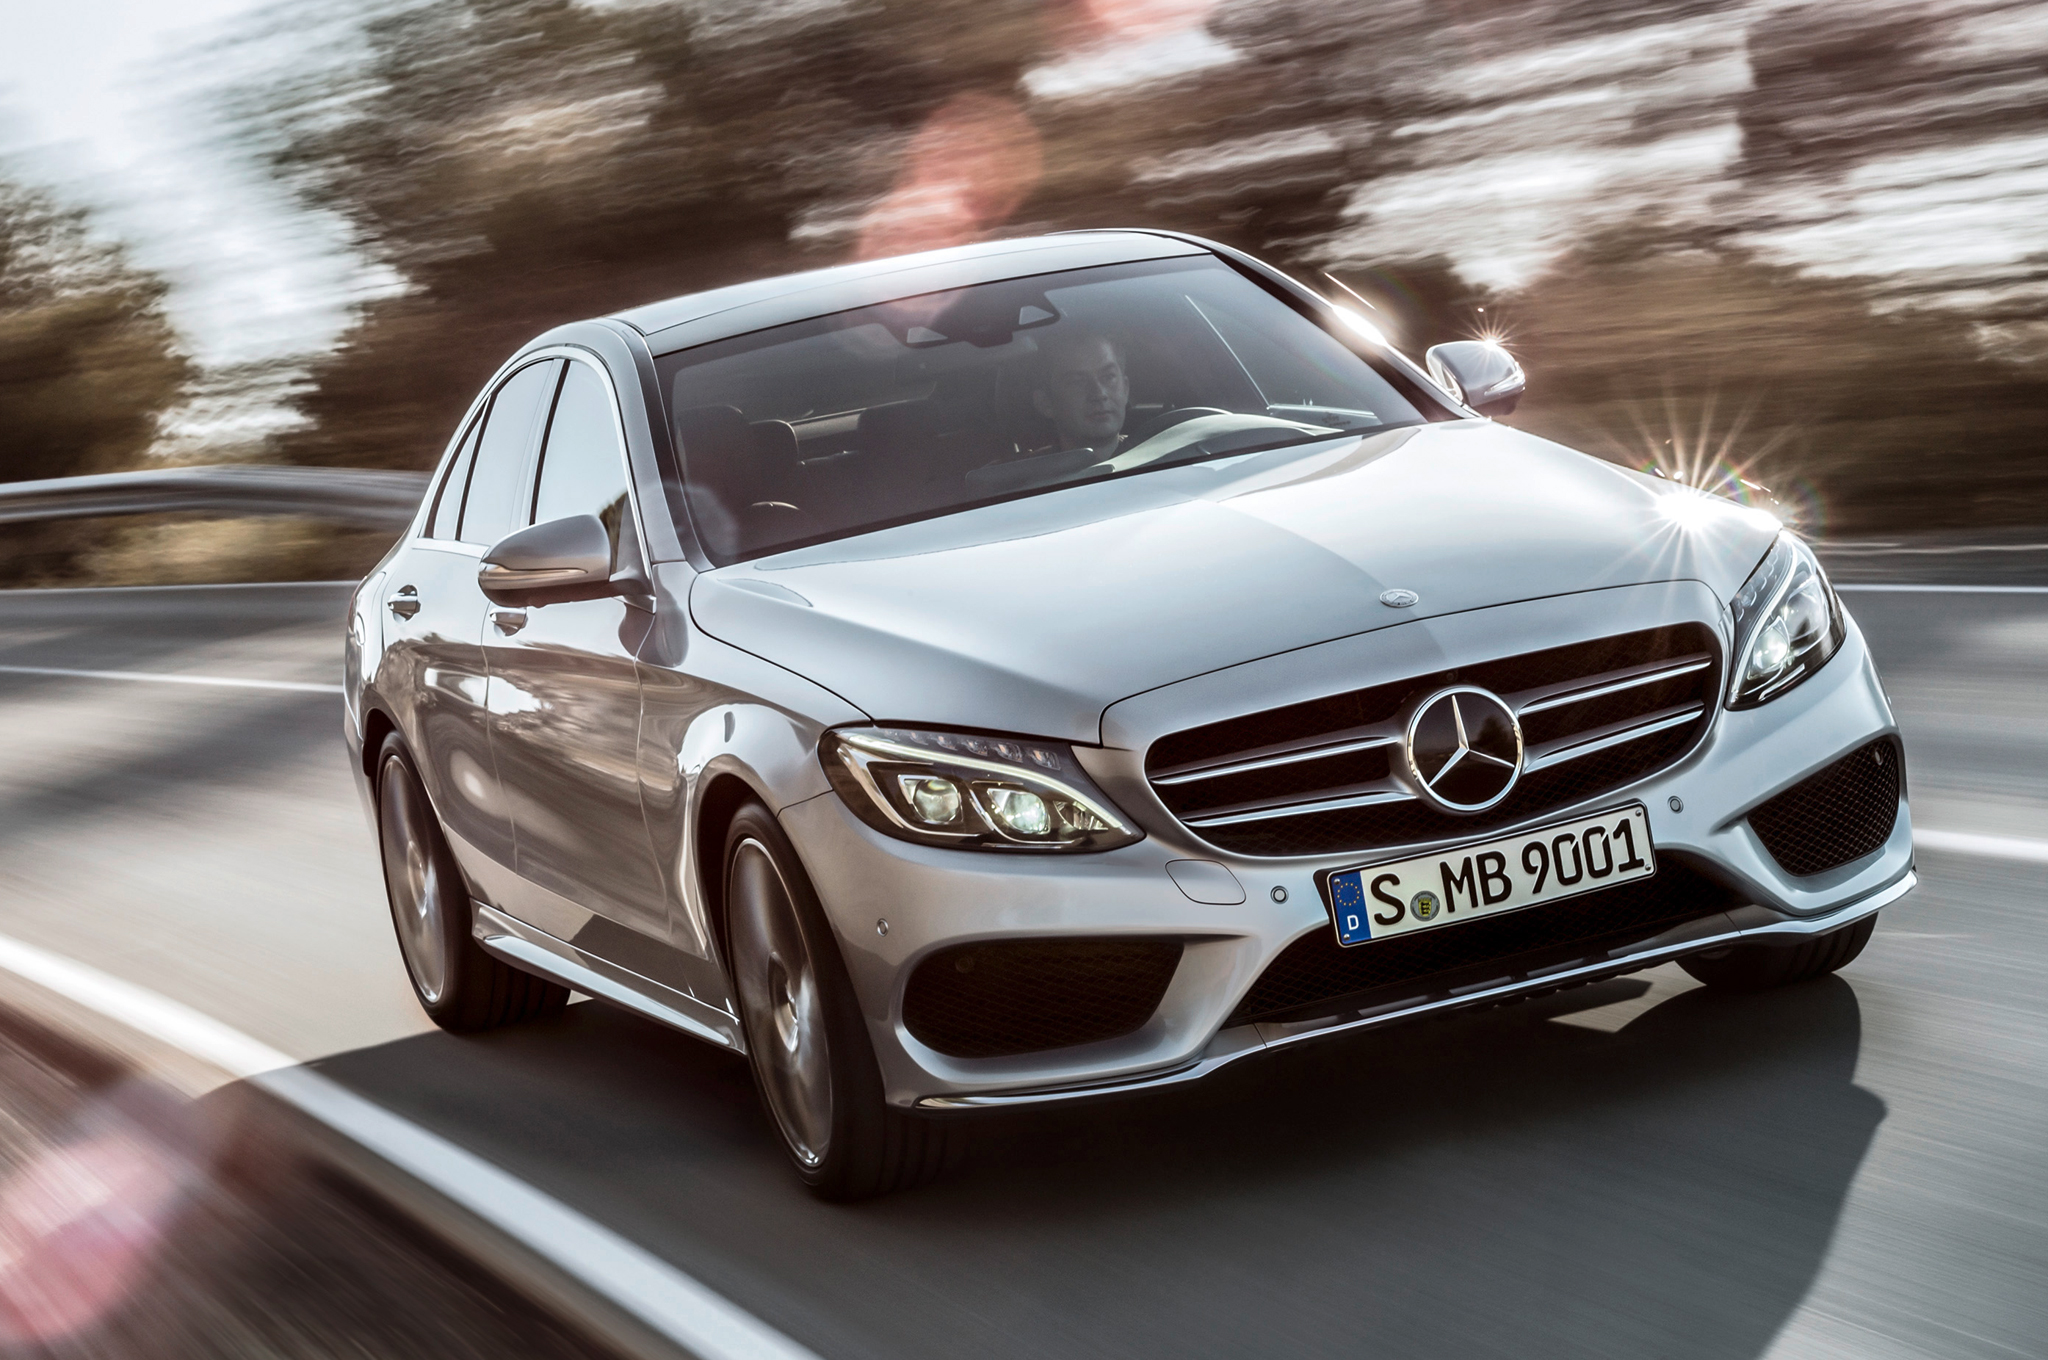 New C Class Mercedes Benz The New C Class Theme Song Movie Theme